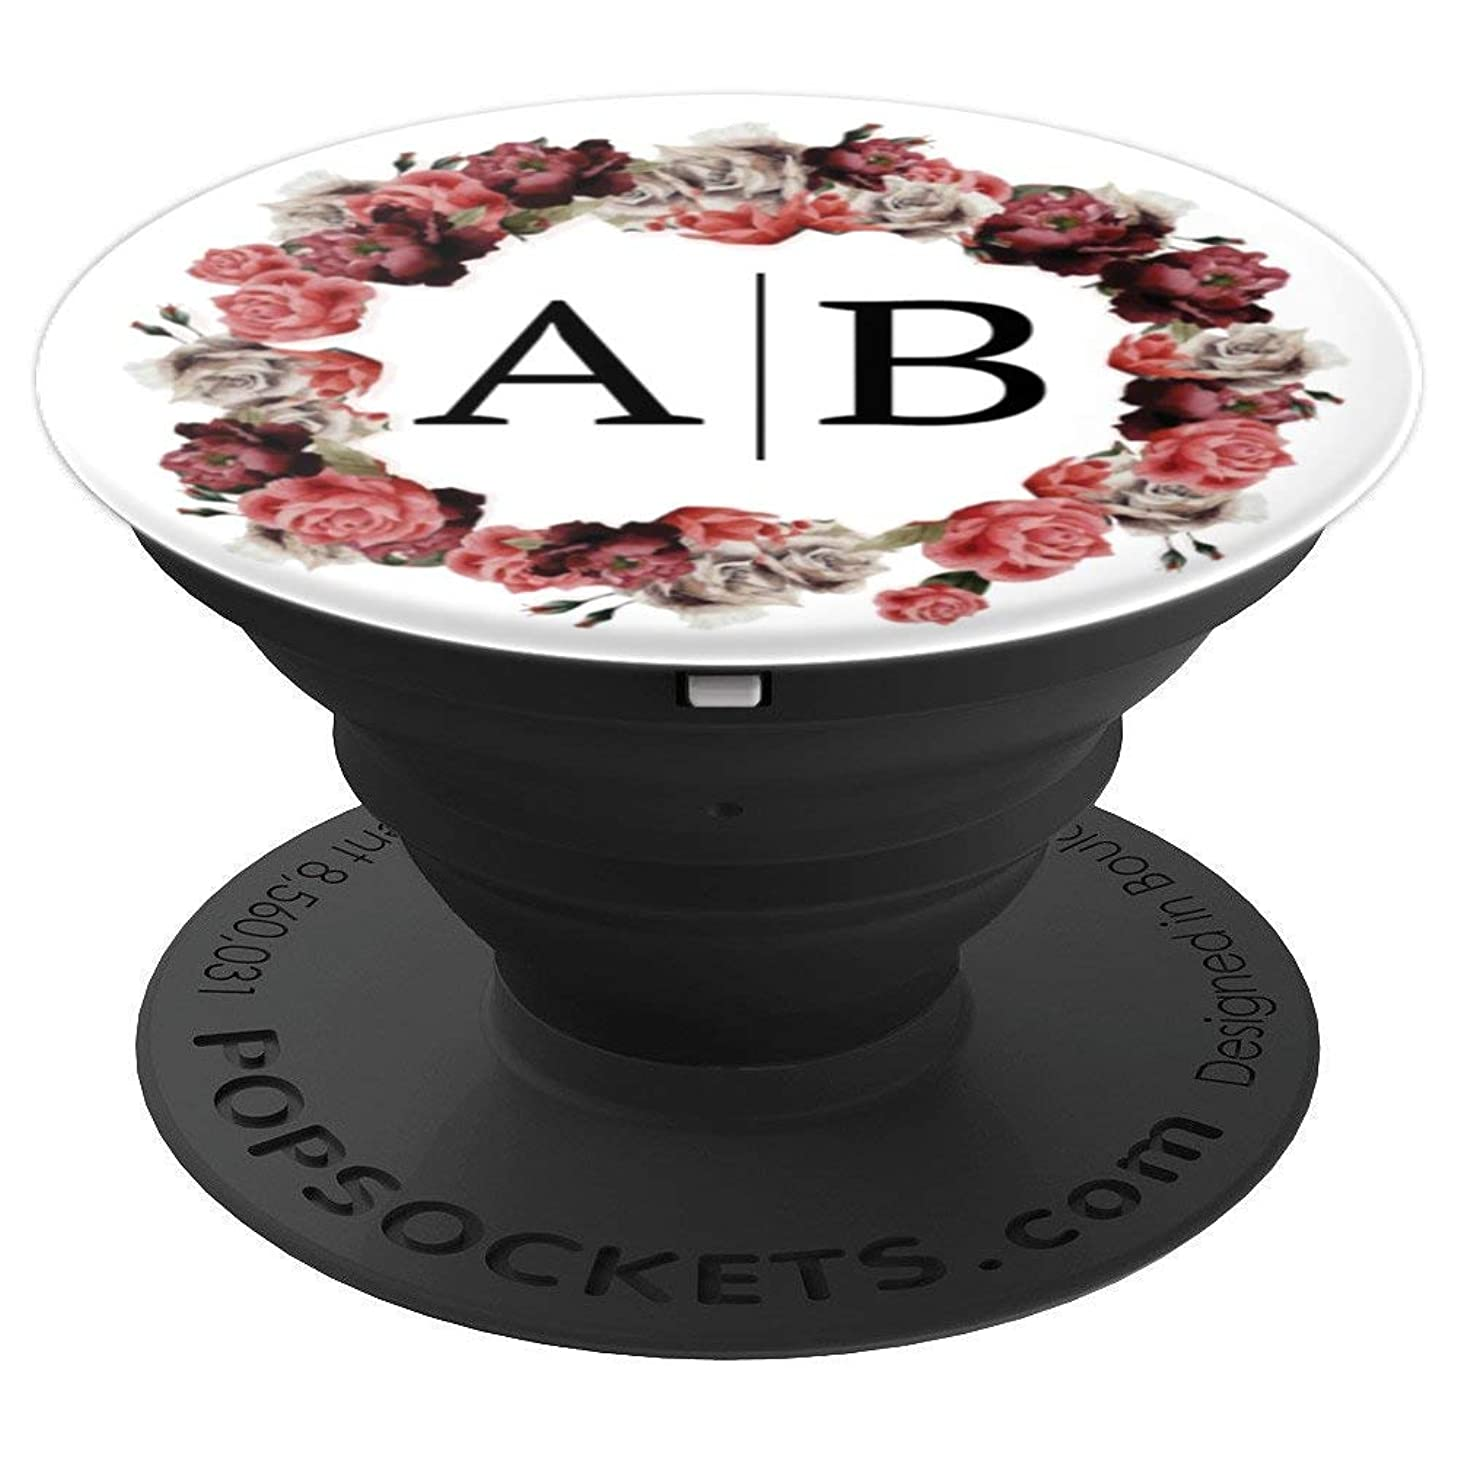 Letter A B Initials Monogram Rose Wedding Flower AB - PopSockets Grip and Stand for Phones and Tablets